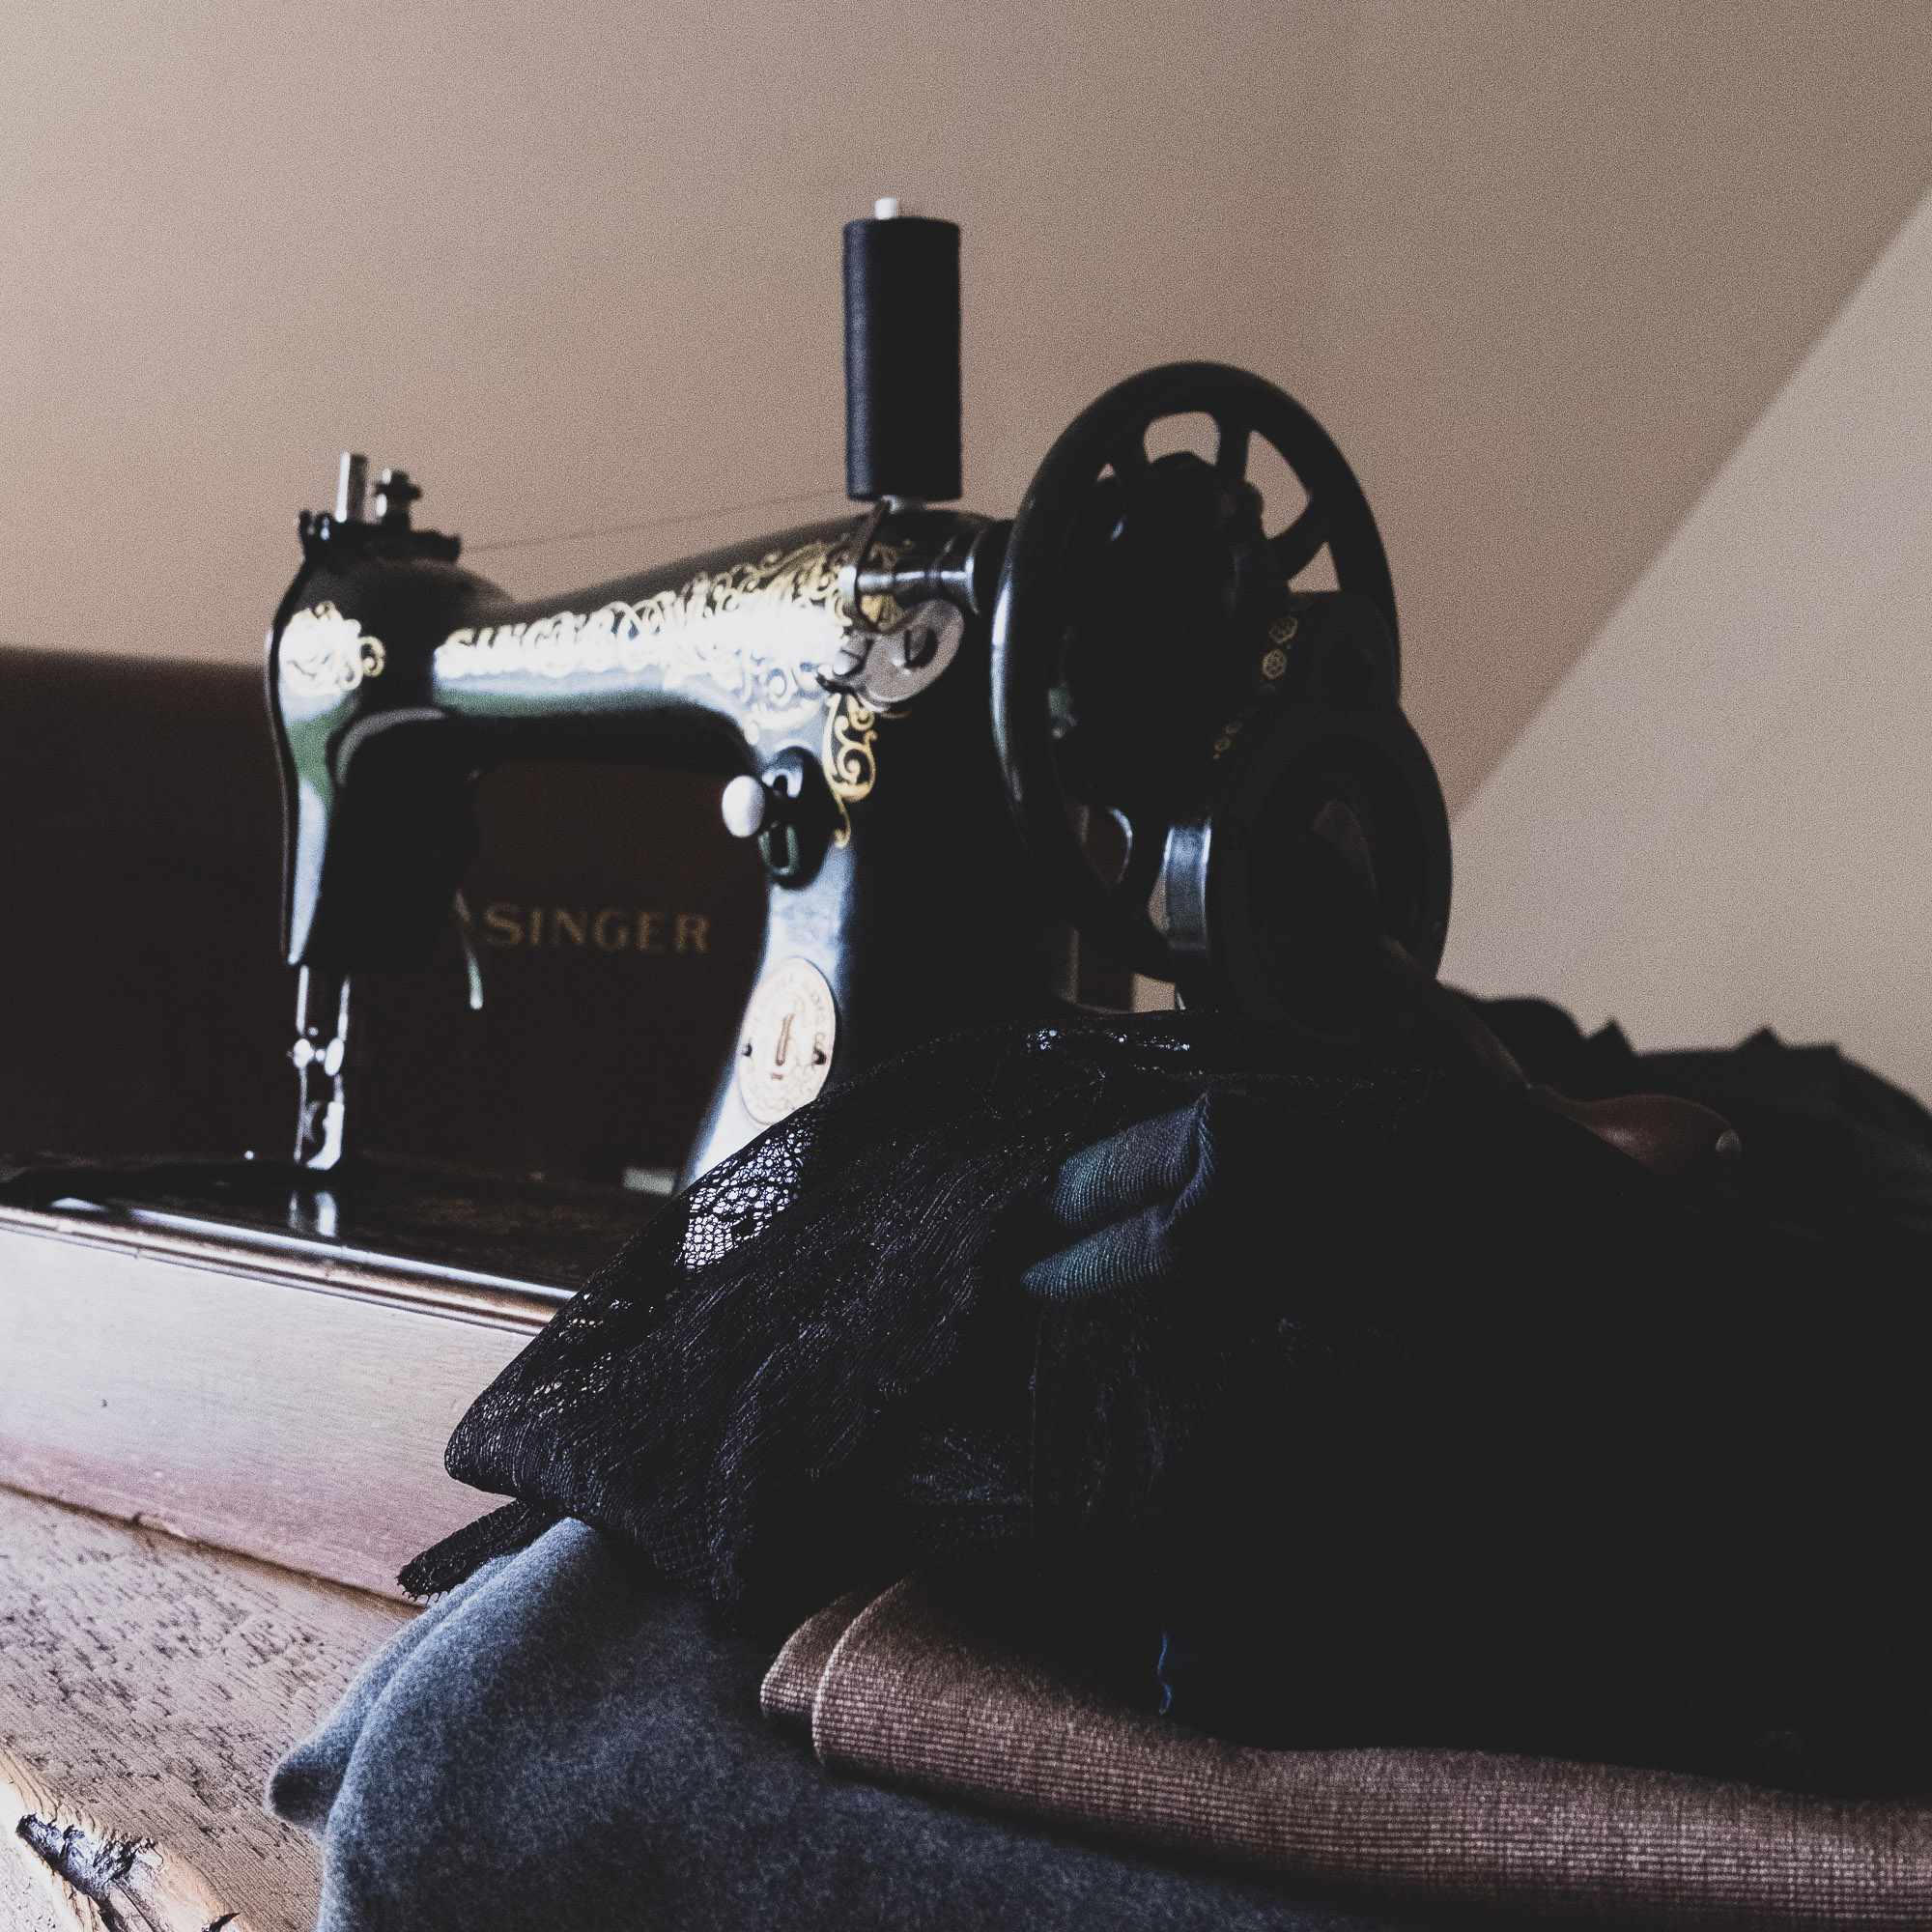 Vintage sewing machine - Singer 15K from 1923